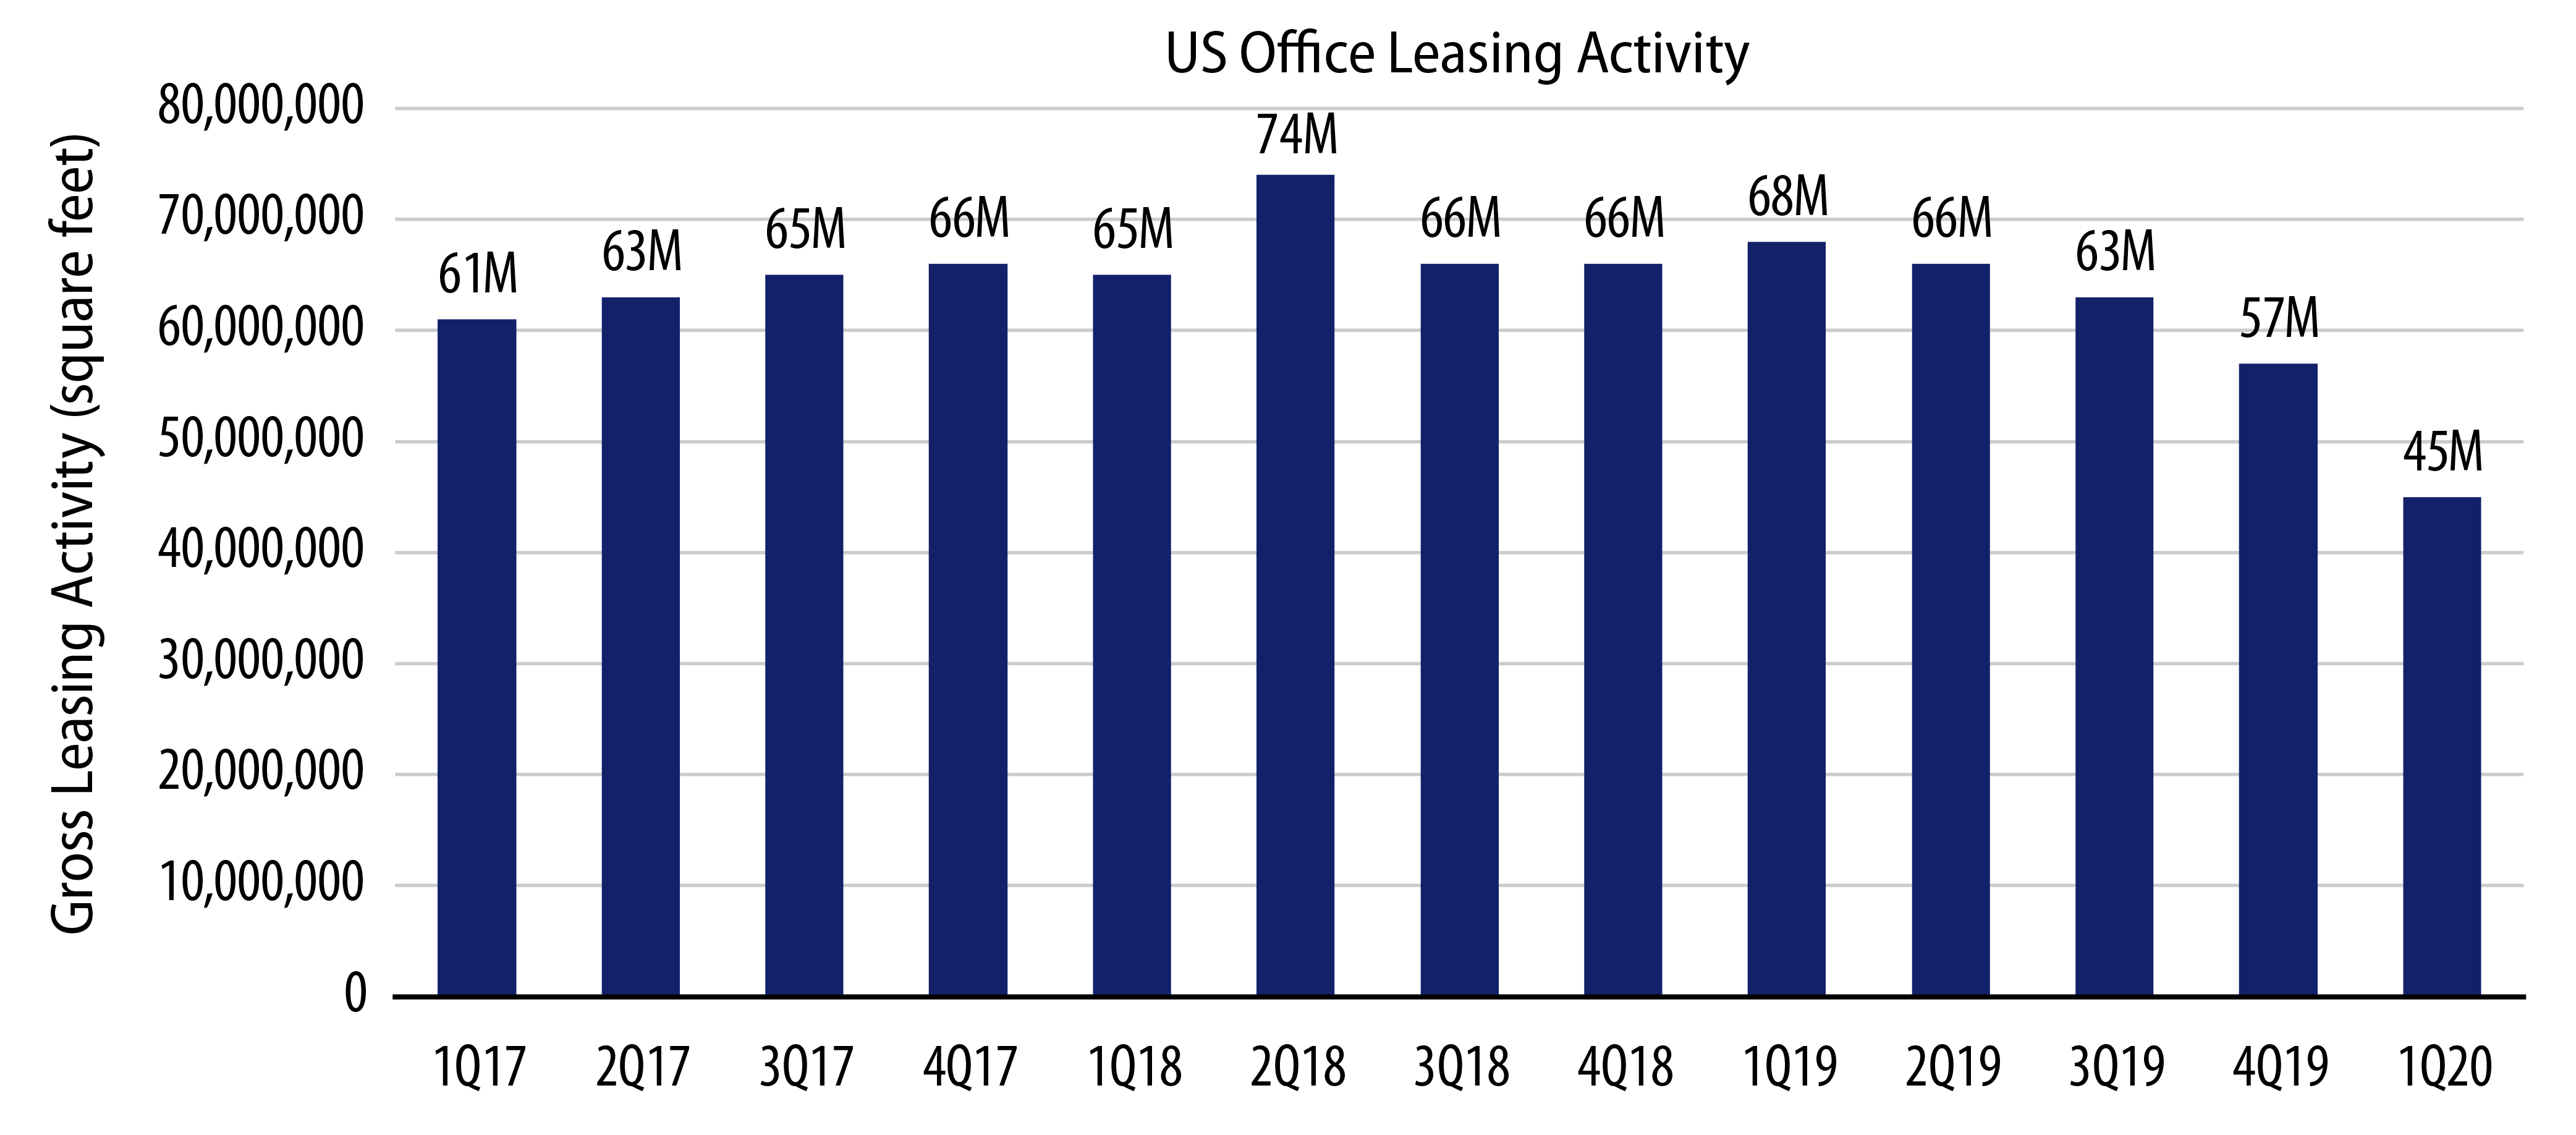 Explore Office Leasing Activity Has Been on the Decline.